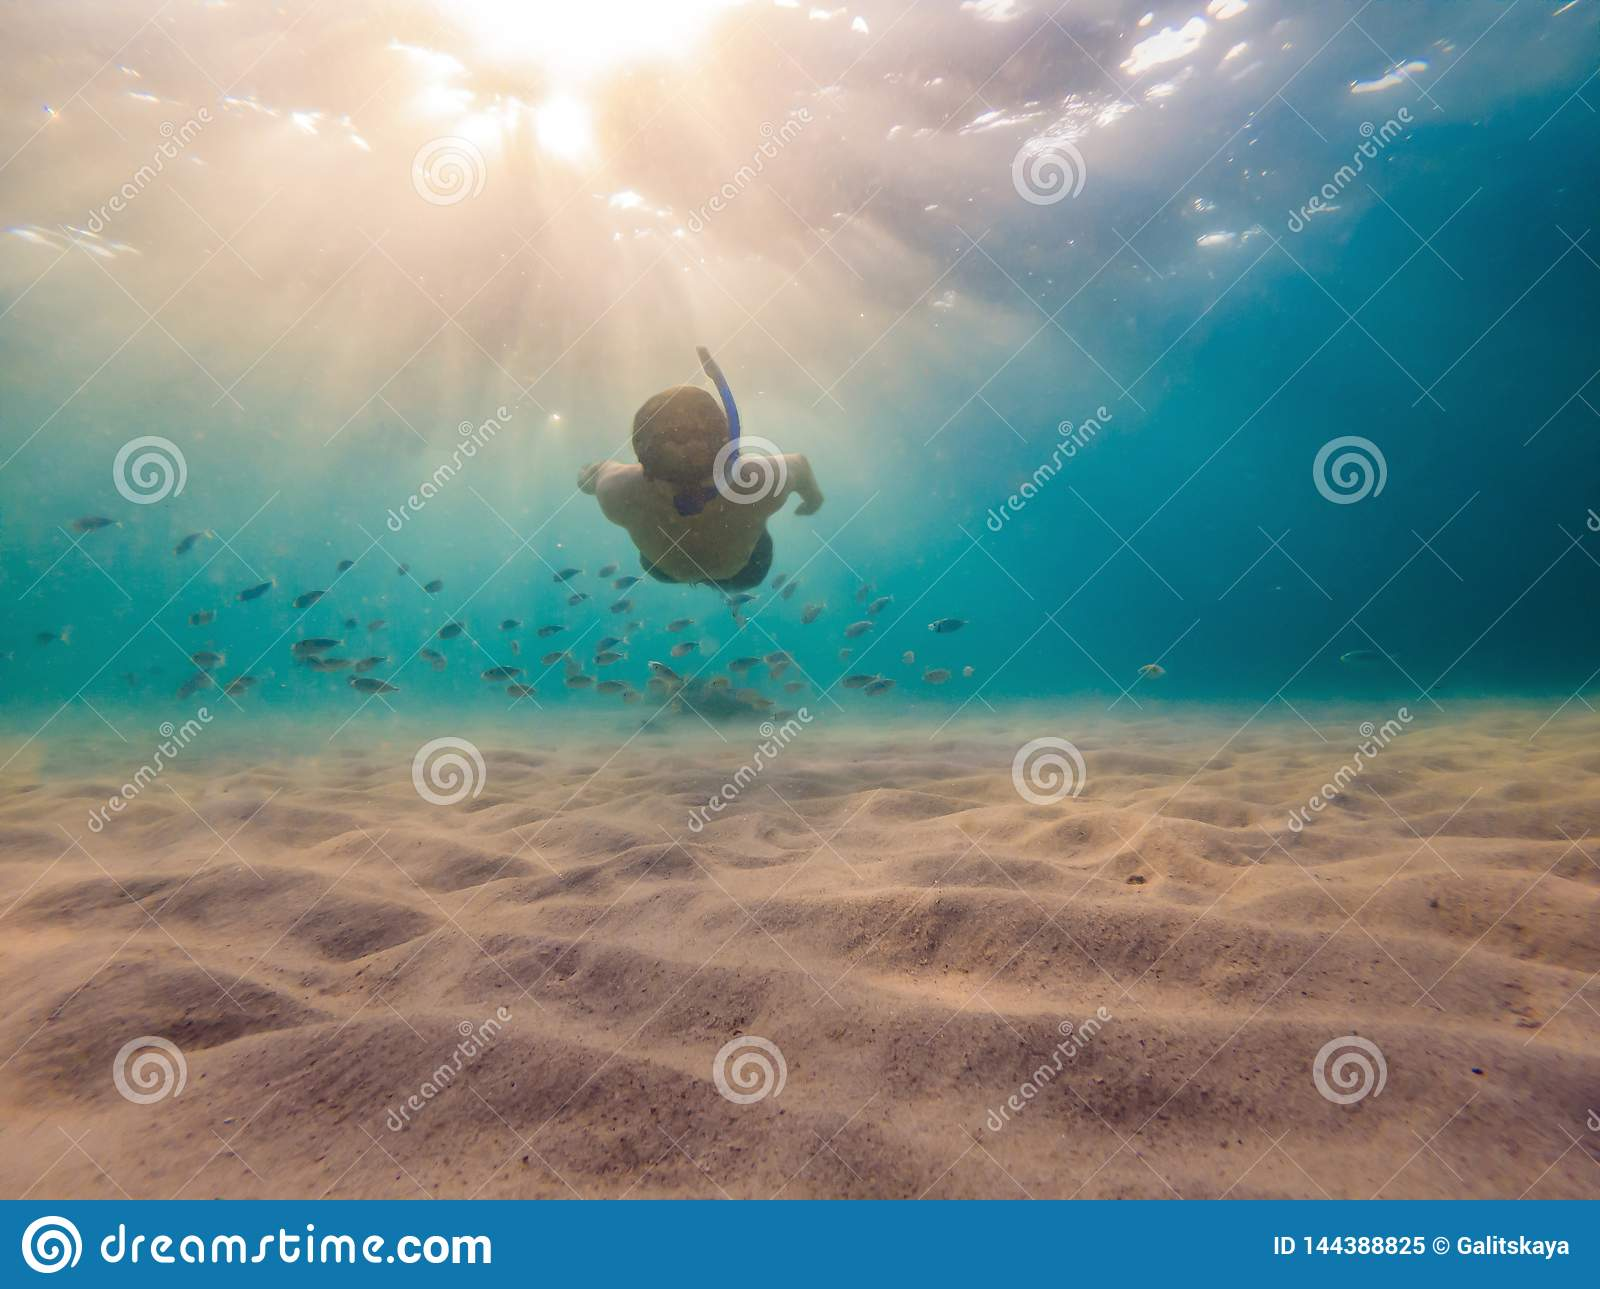 Young men snorkeling exploring underwater coral reef landscape background in the deep blue ocean with colorful fish and